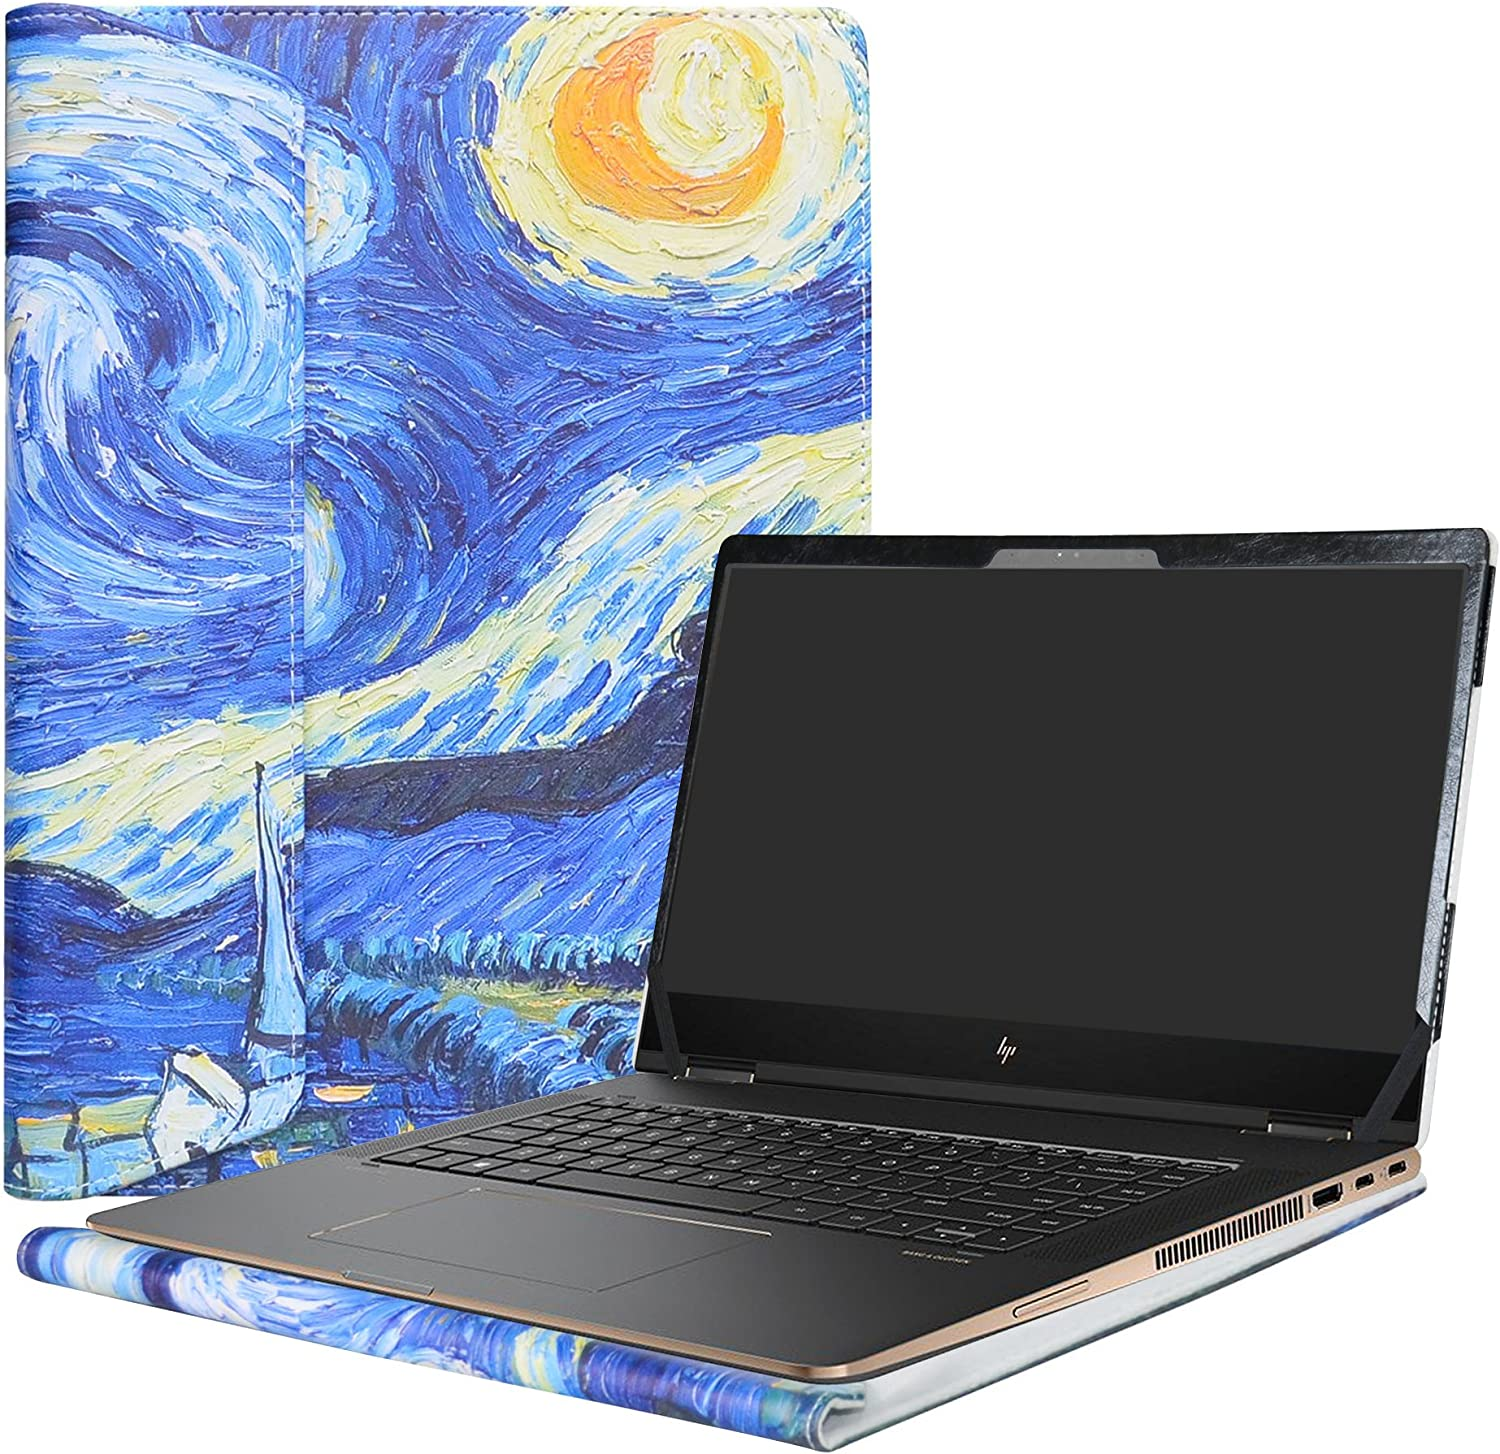 """Alapmk Protective Case Cover for 15.6"""" HP Spectre x360 15 15-chXXX (15-ch000 to 15-ch999,Such as 15-ch011nr 15-ch011dx,Not fit Spectre x360 15 15-apXXX/15-blXXX Series) Laptop,Starry Night"""